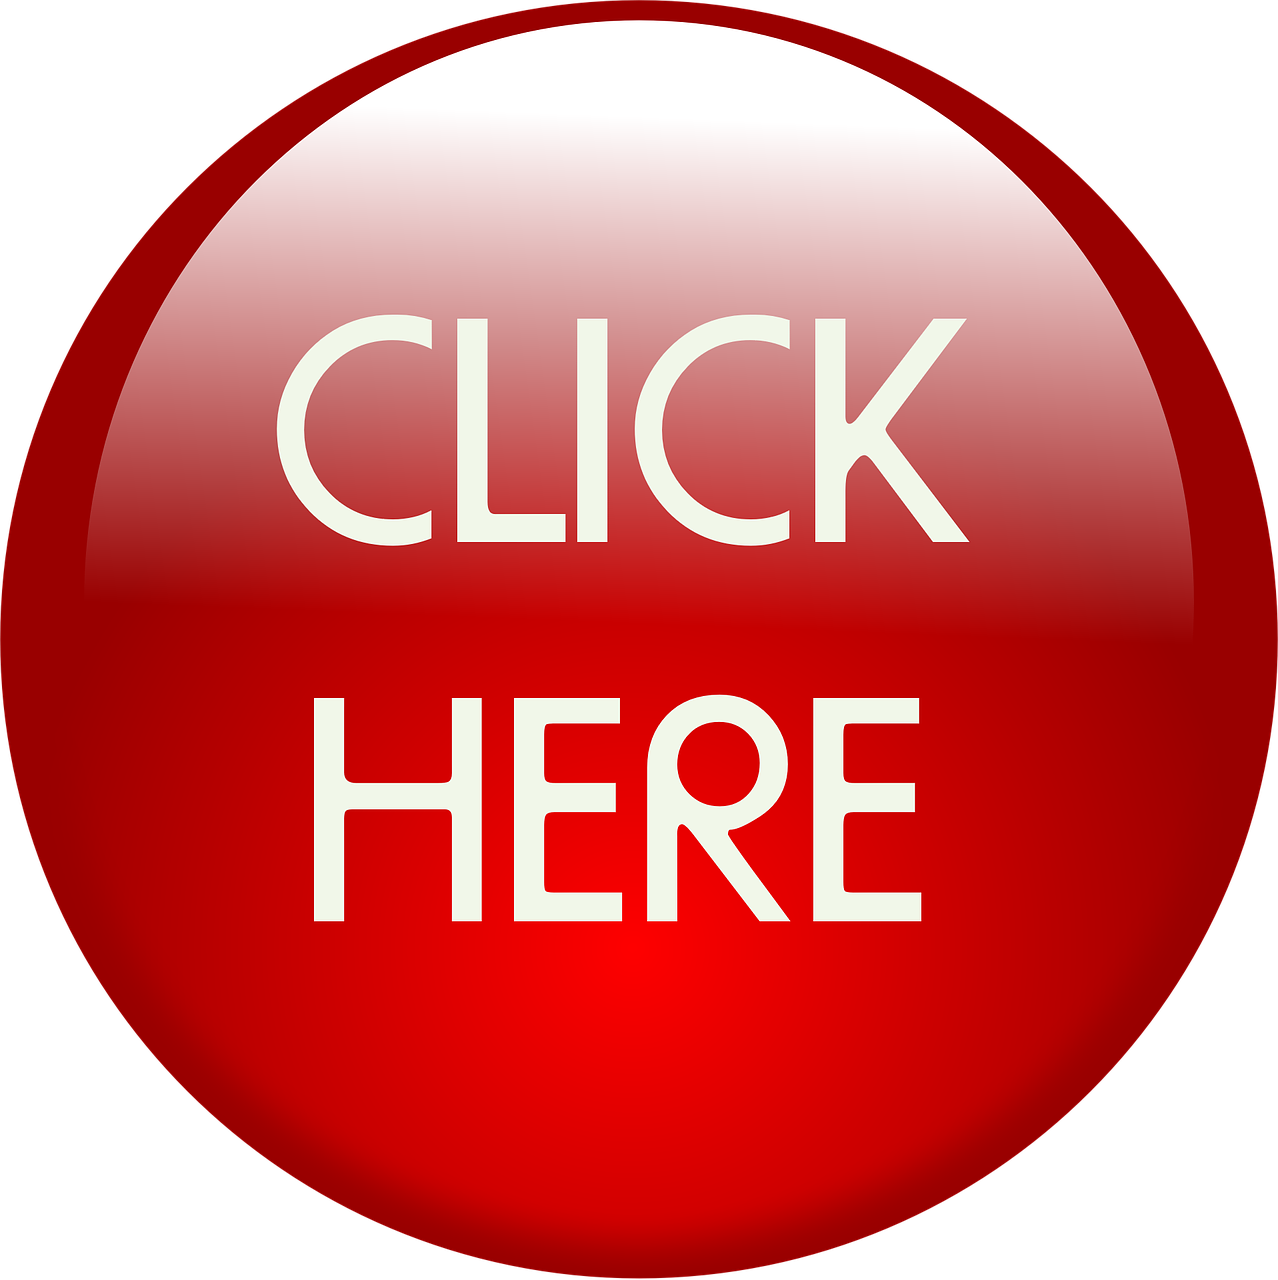 Click Tag Button Internet Web PNG | Picpng